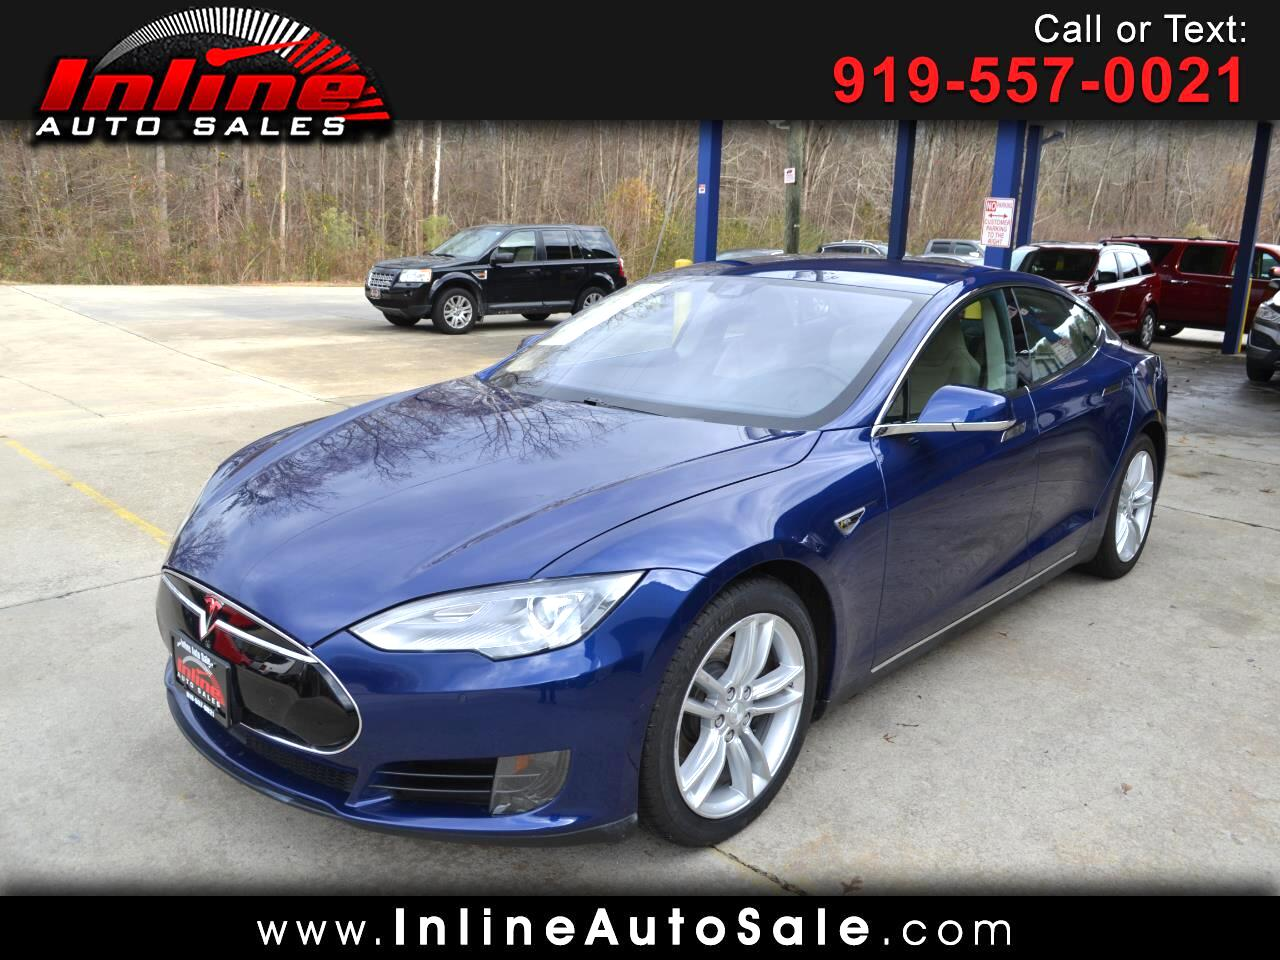 2015 Tesla Model S 4dr Sdn RWD 70 kWh Battery